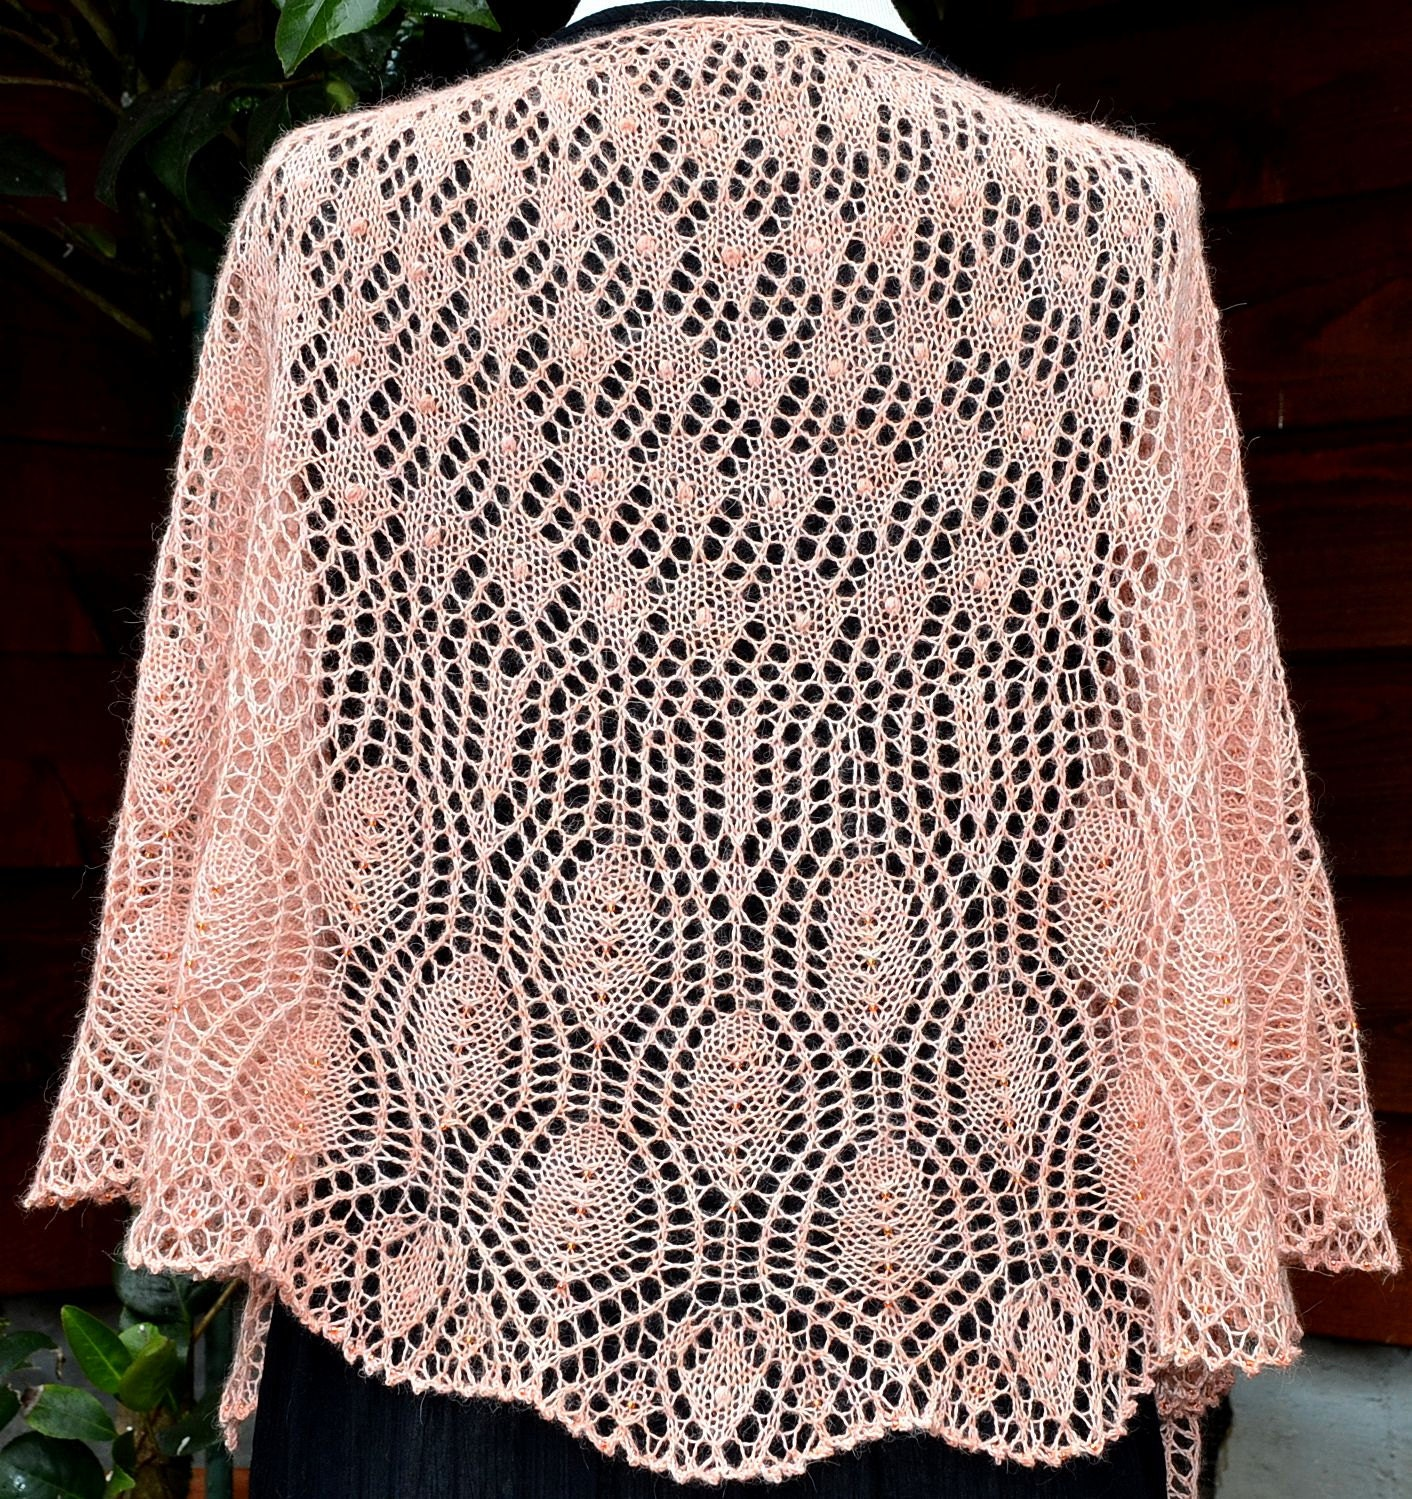 Knit Shawl Pattern Wings Of A Prayer From